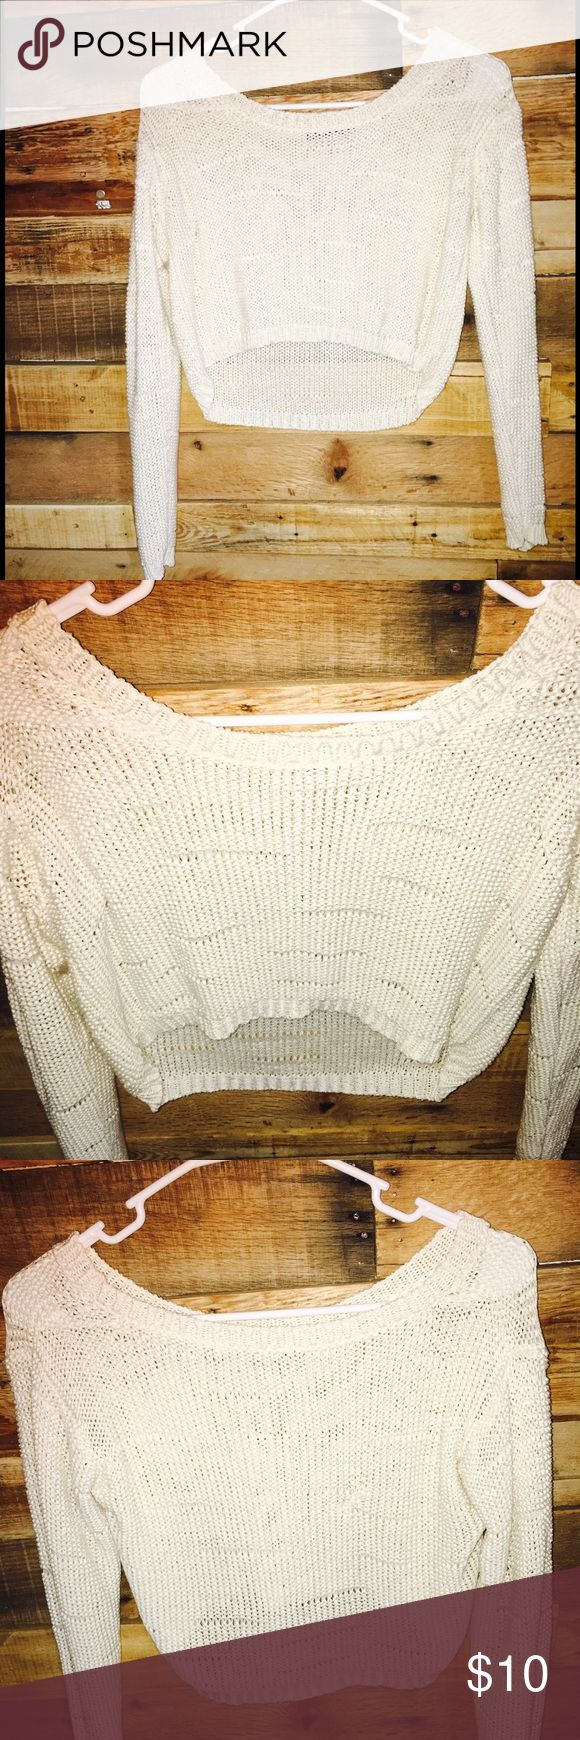 Brandy Melville crochet sweater. Beautiful brandy Melville sweater, one stitch came out in back so had to fix by sewing area together. See pictures. Hardly noticeable, otherwise great cute sweater.3️⃣ Brandy Melville Sweaters